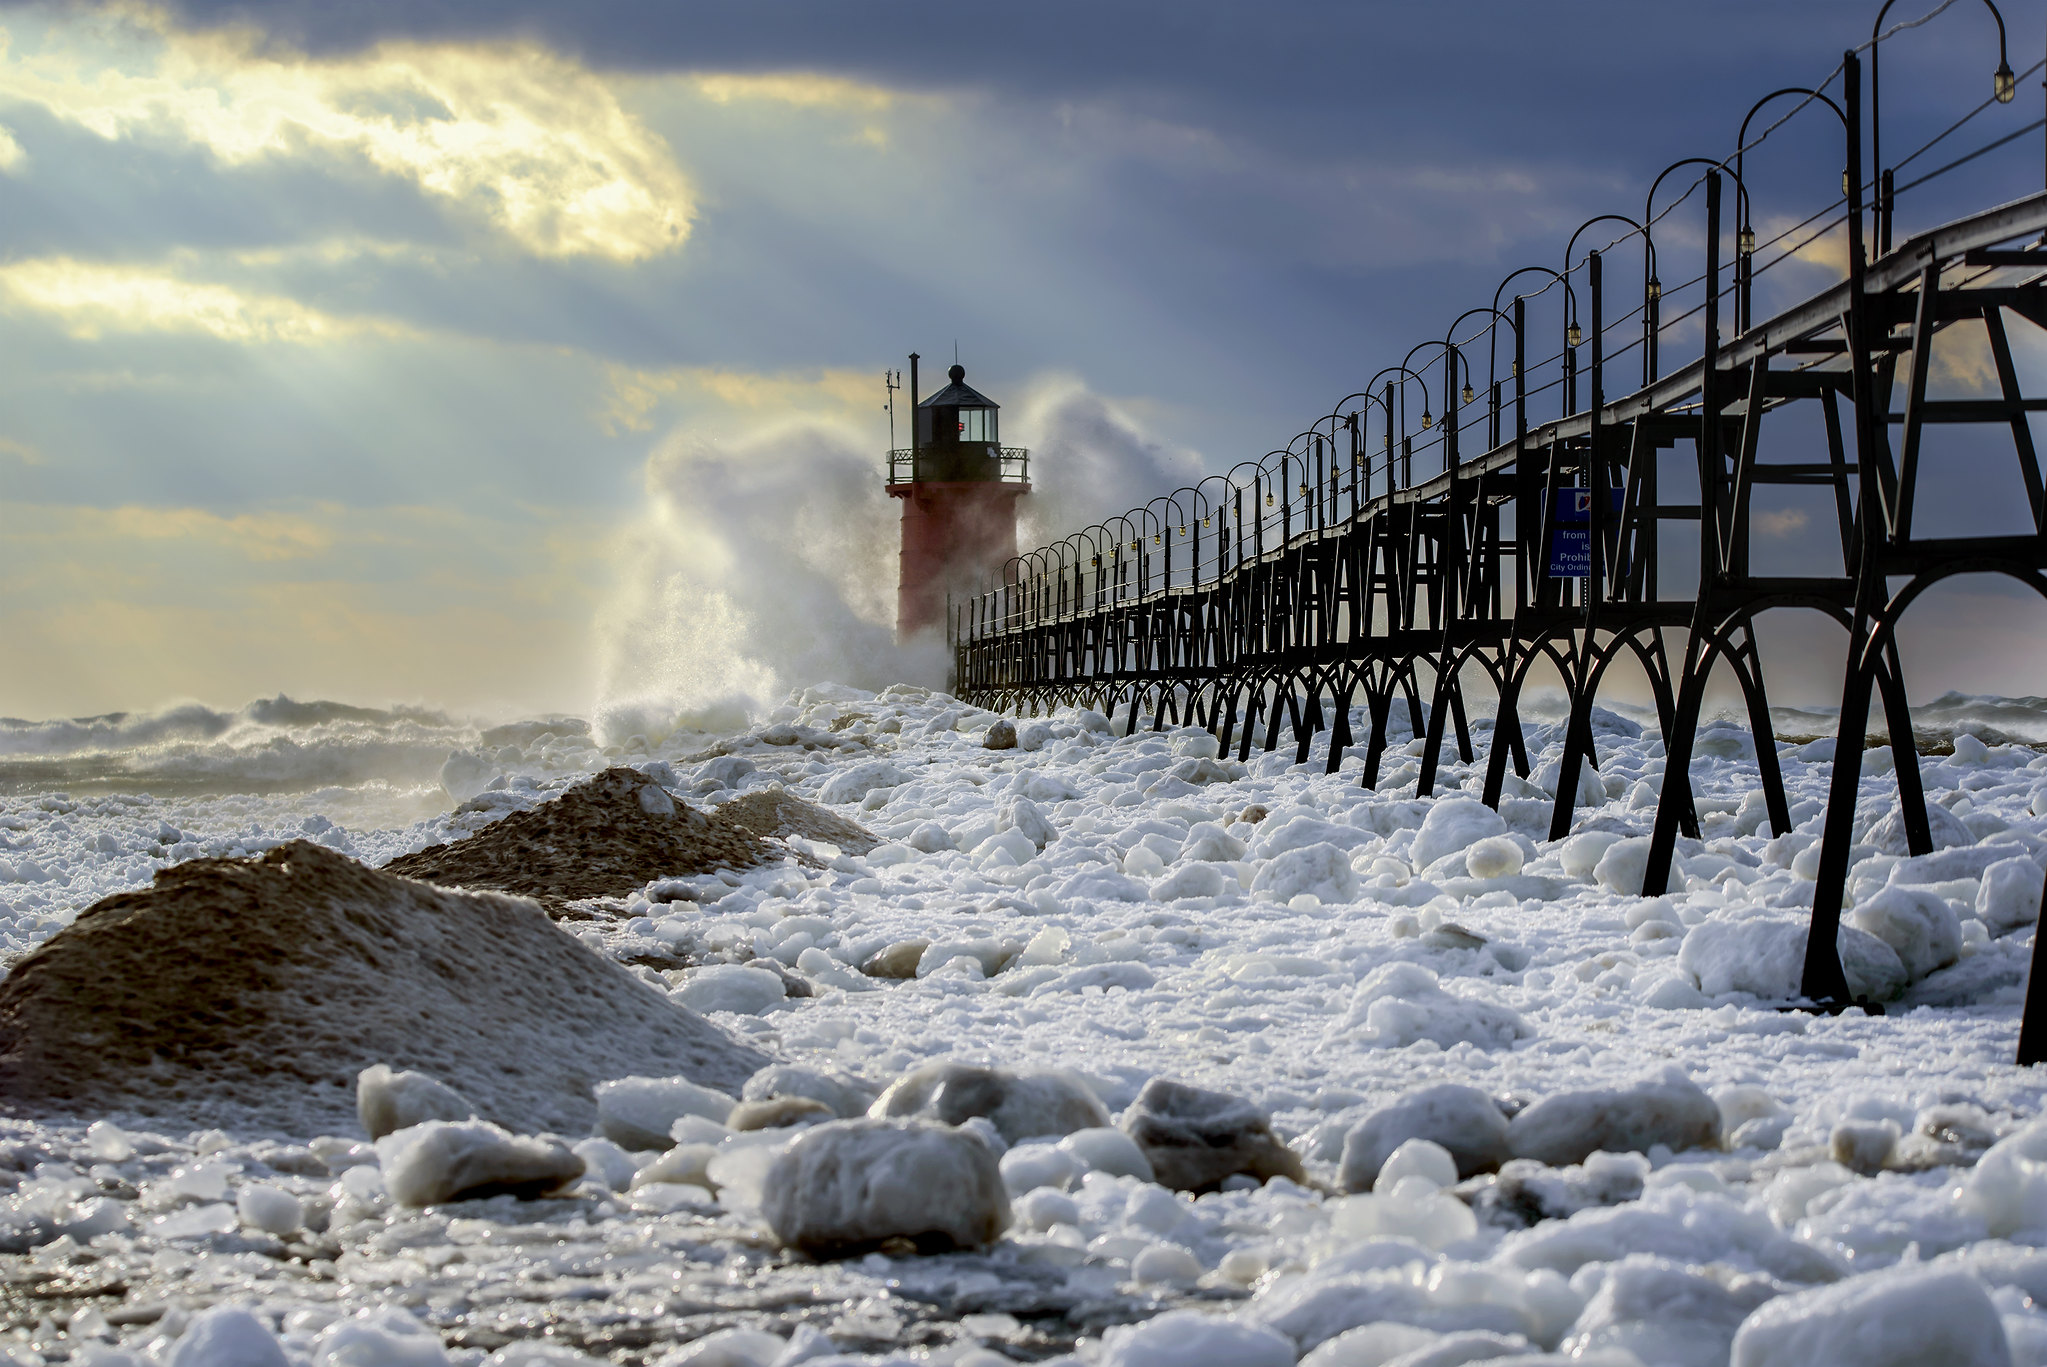 Michiganders Should Expect Ample Cold And Snow This Winter According To The Farmers' Almanac